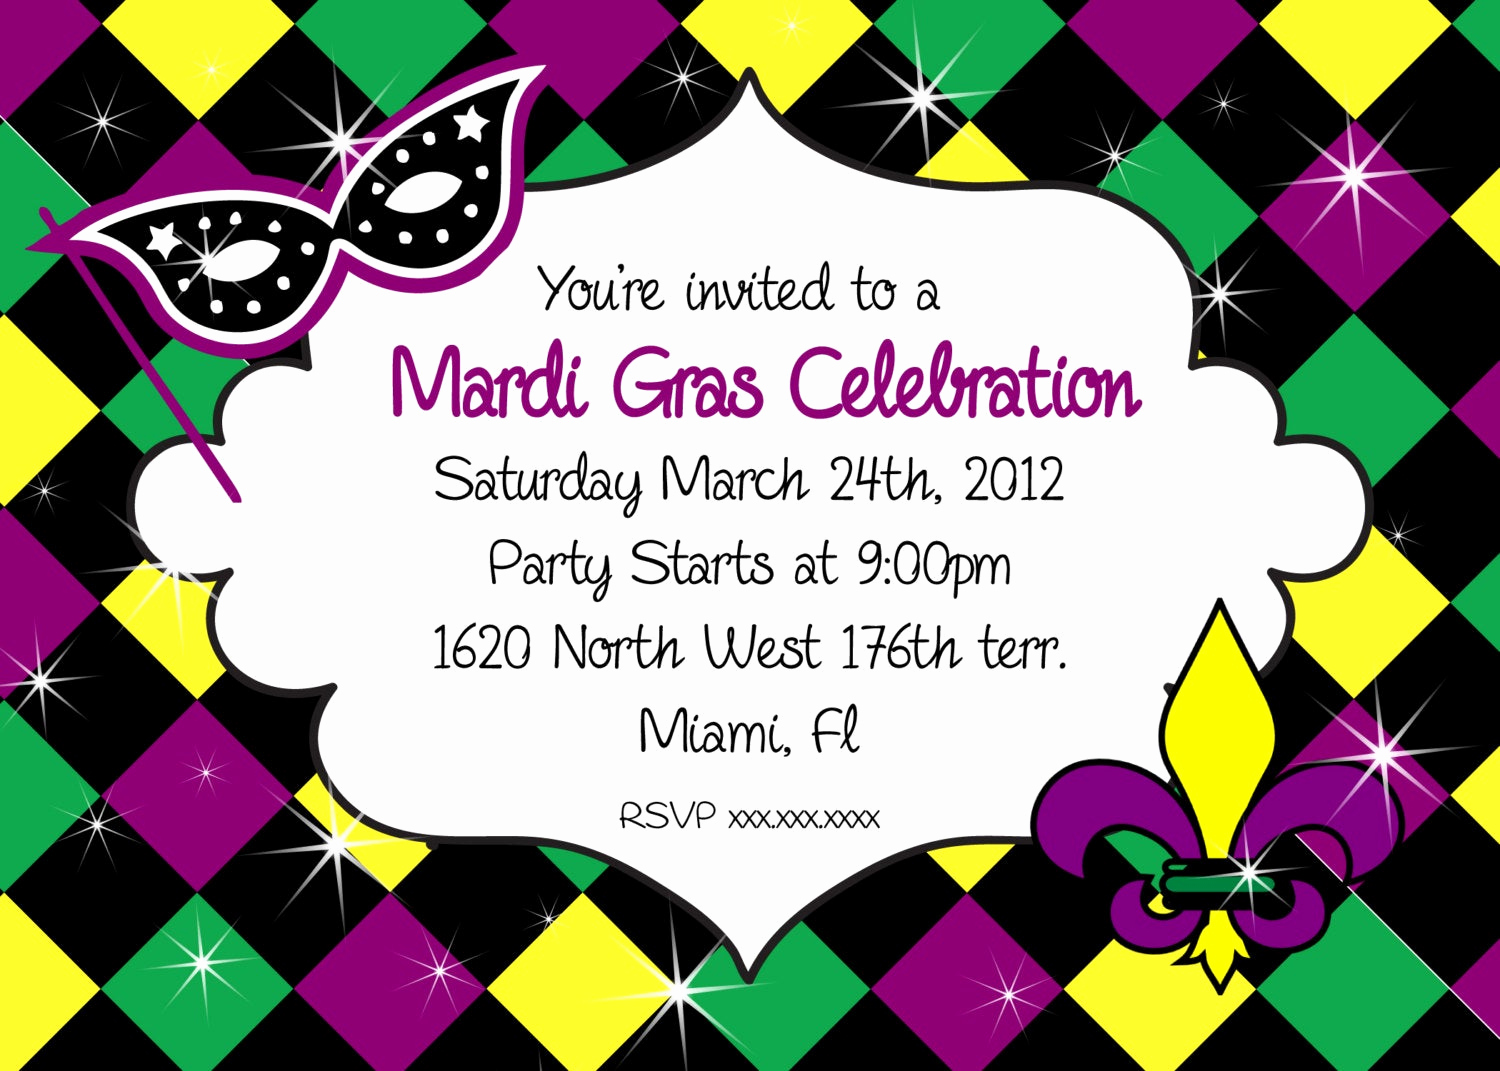 Mardi Gras Invitation Template Fresh Mardi Gras Invitation Party Printable Invitation